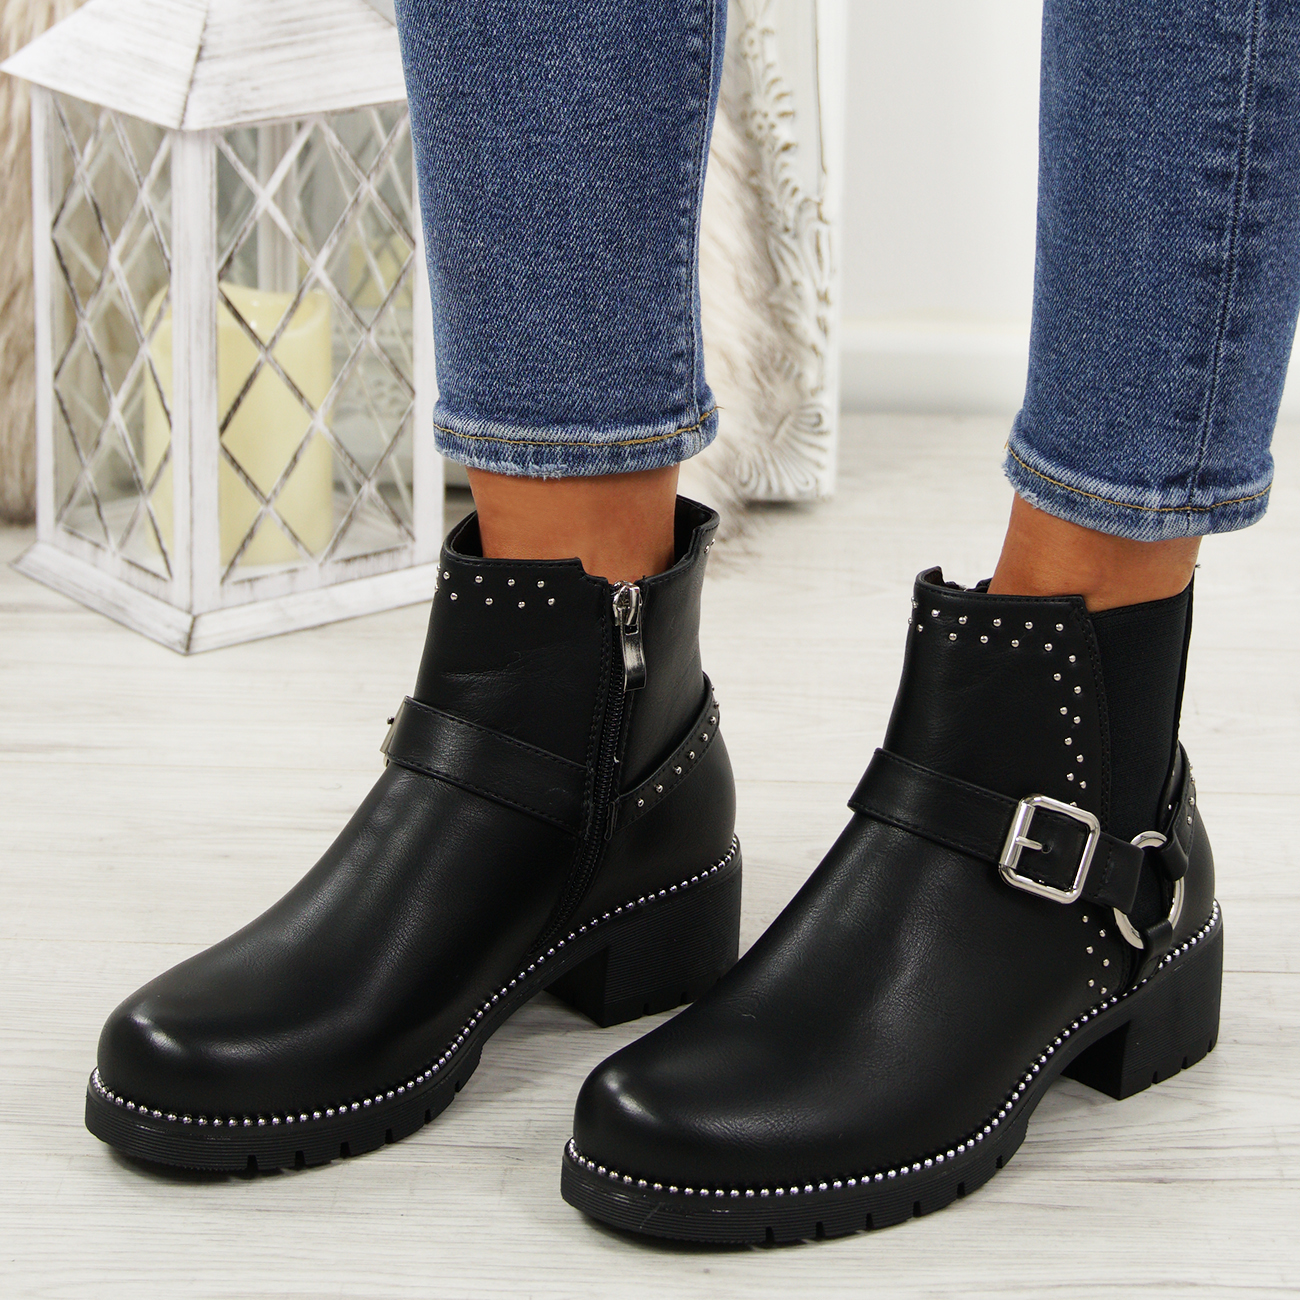 cb4ace82be05 LADIES STUDDED ANKLE BOOTS WOMENS BUCKLE CHELSEA LOW HEEL GRIP SHOES ...